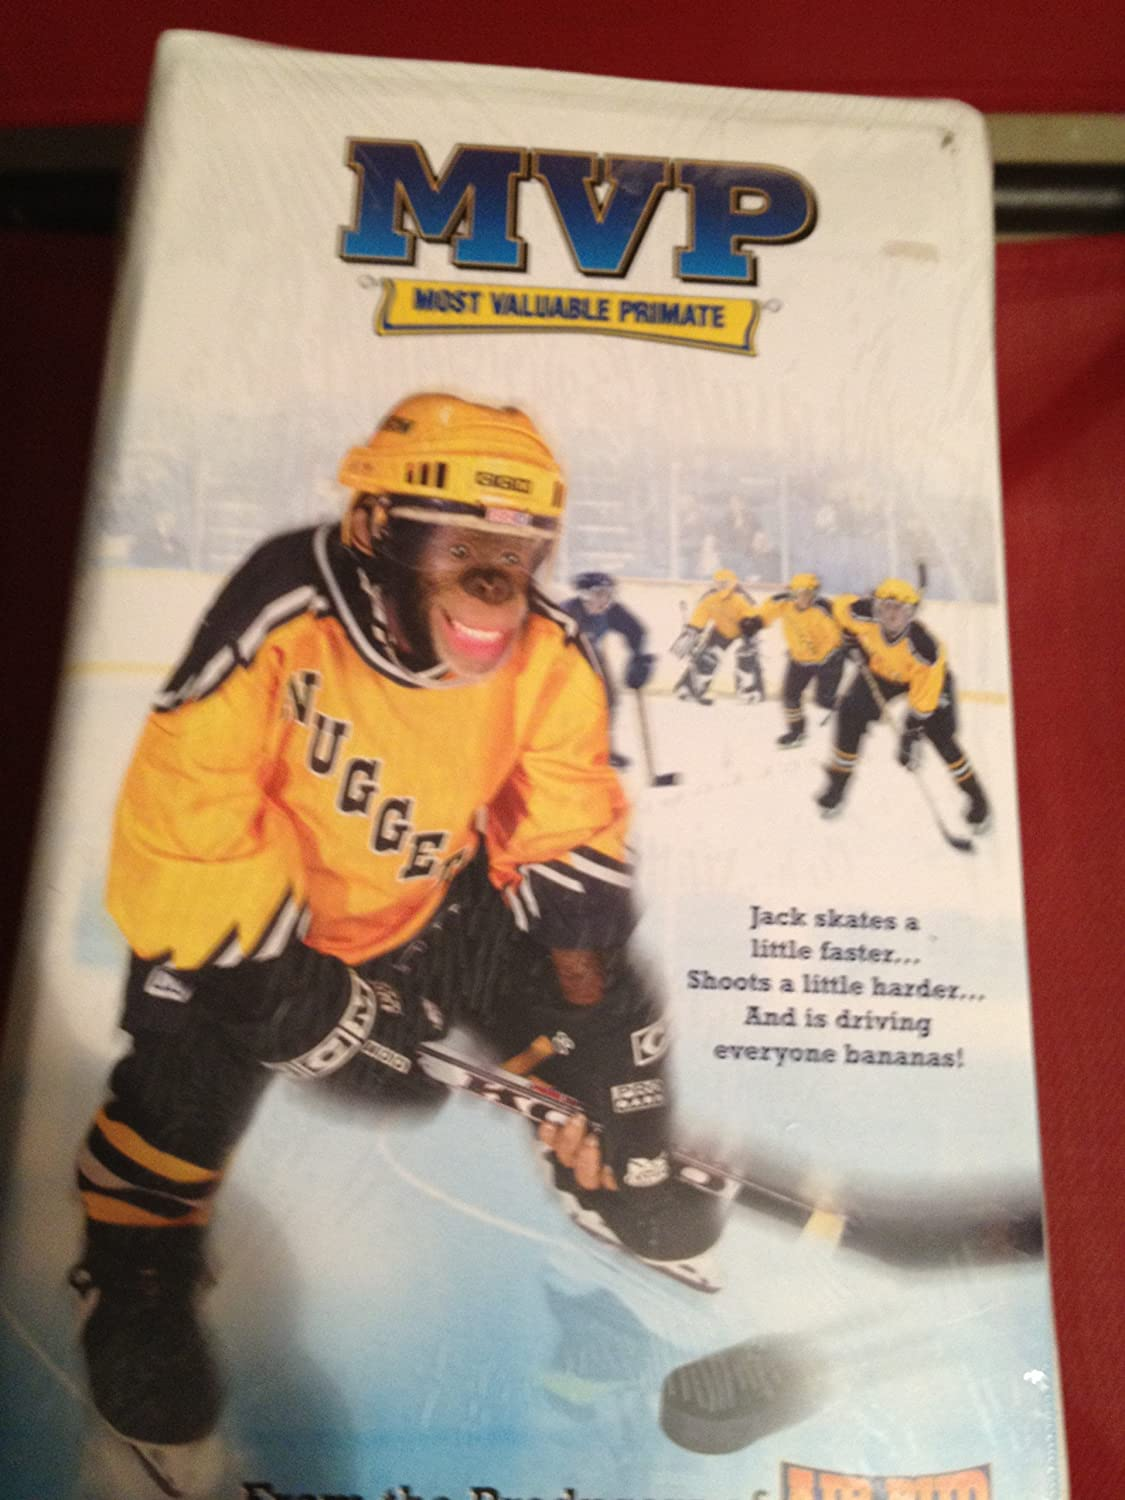 MVP: Most Valuable Primate [VHS]: Amazon co uk: DVD & Blu-ray